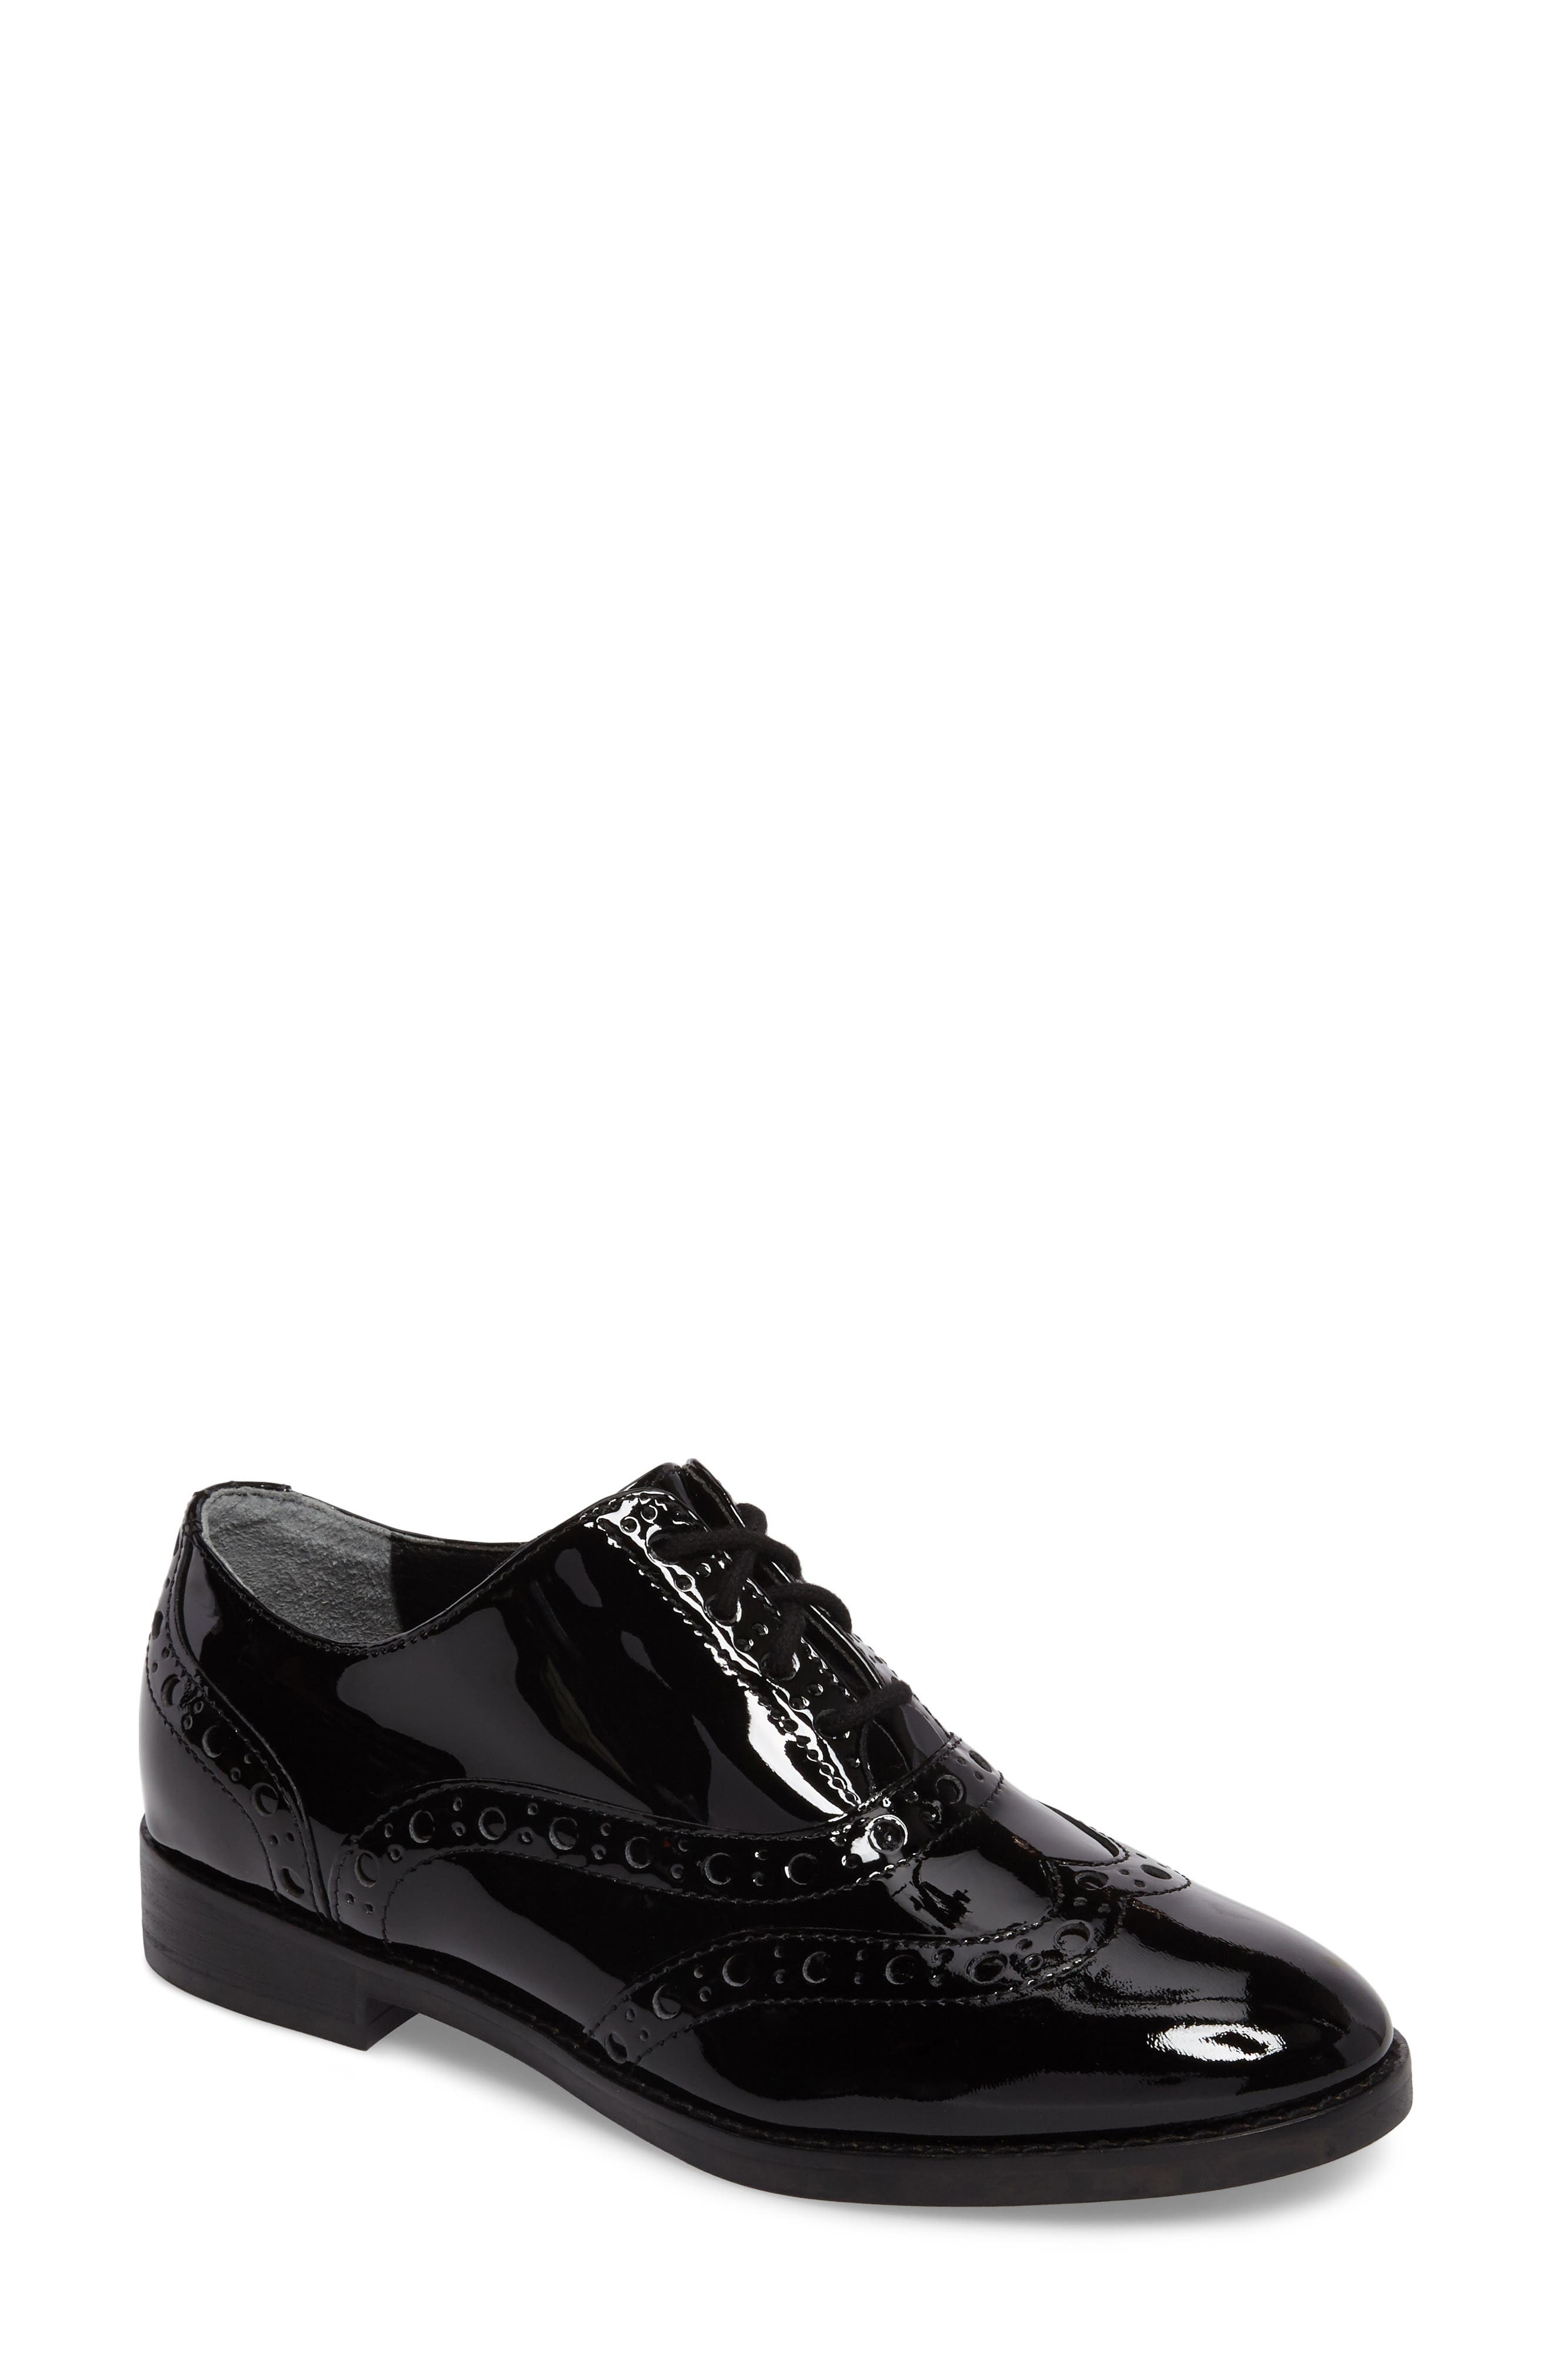 Hadley Wingtip,                         Main,                         color, Black Patent Leather